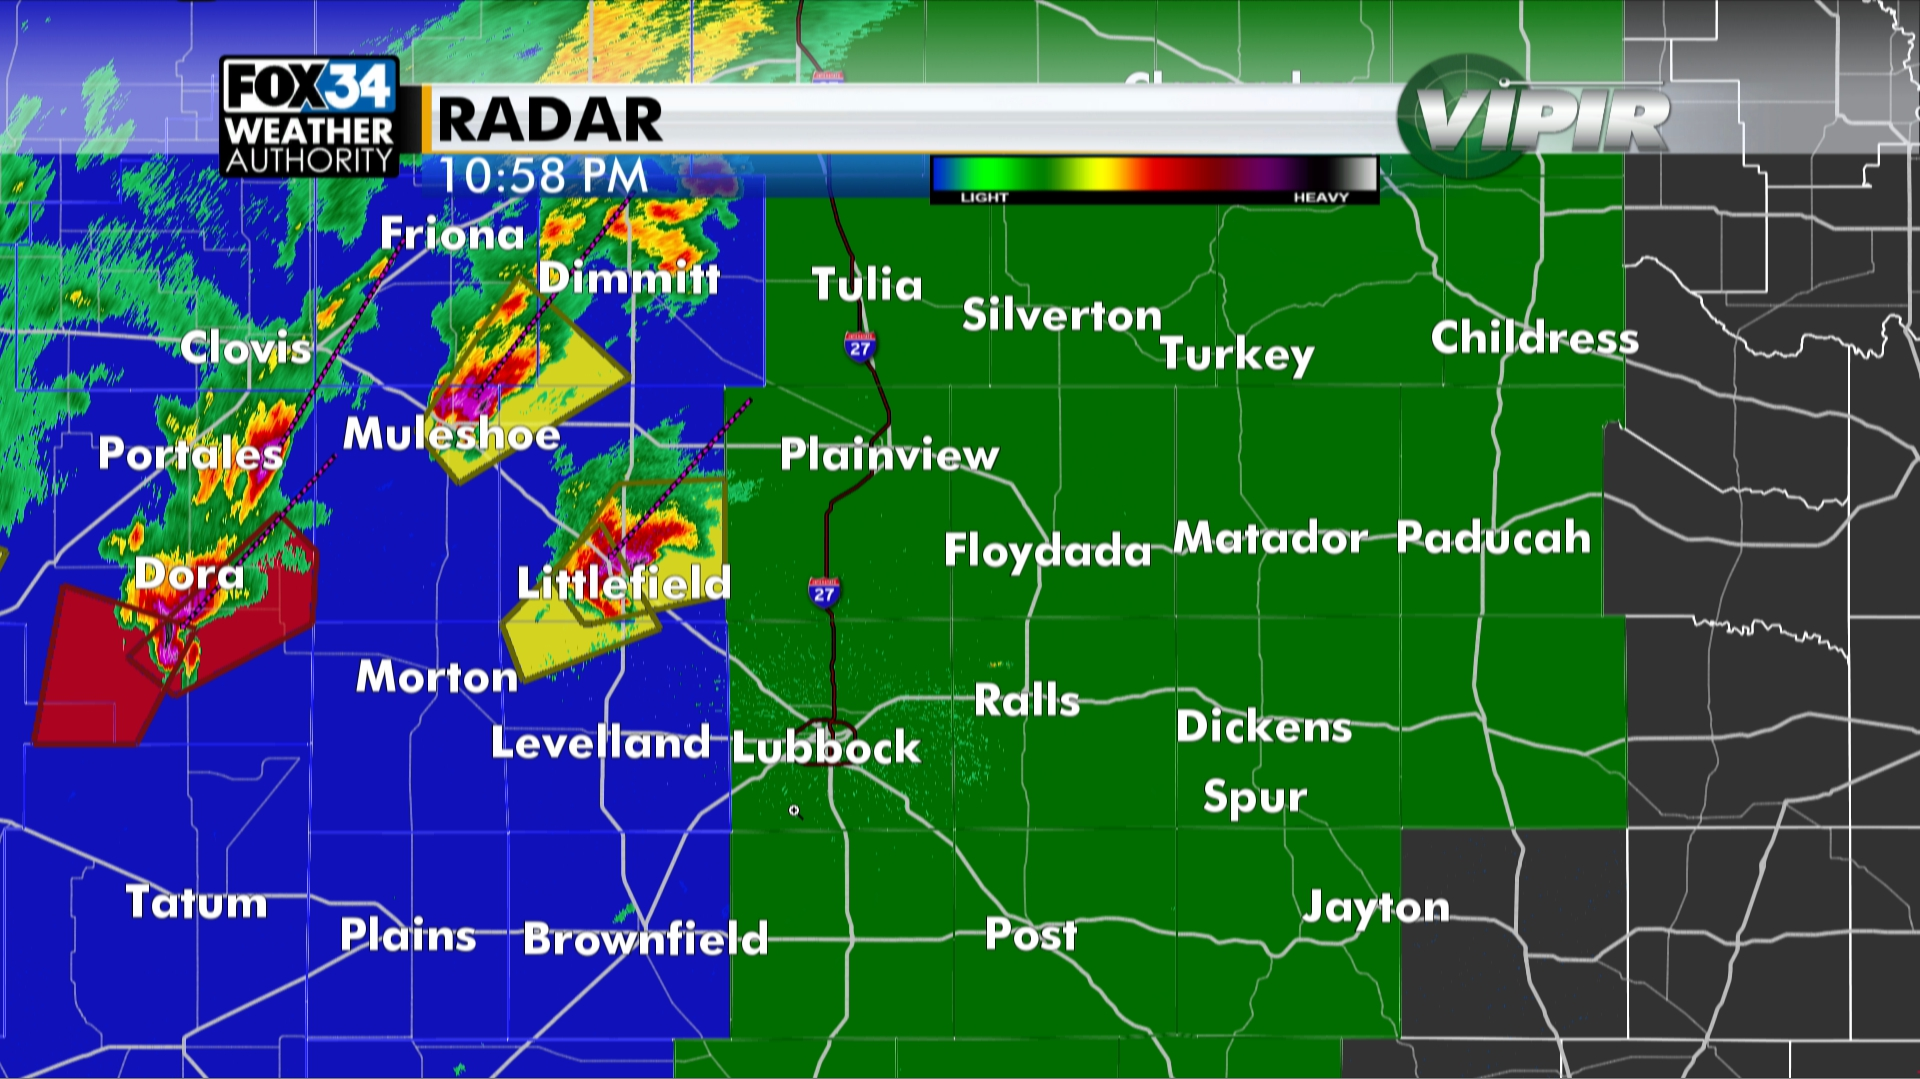 Severe thunderstorm watch until 7 a m  for Lubbock, South Plains